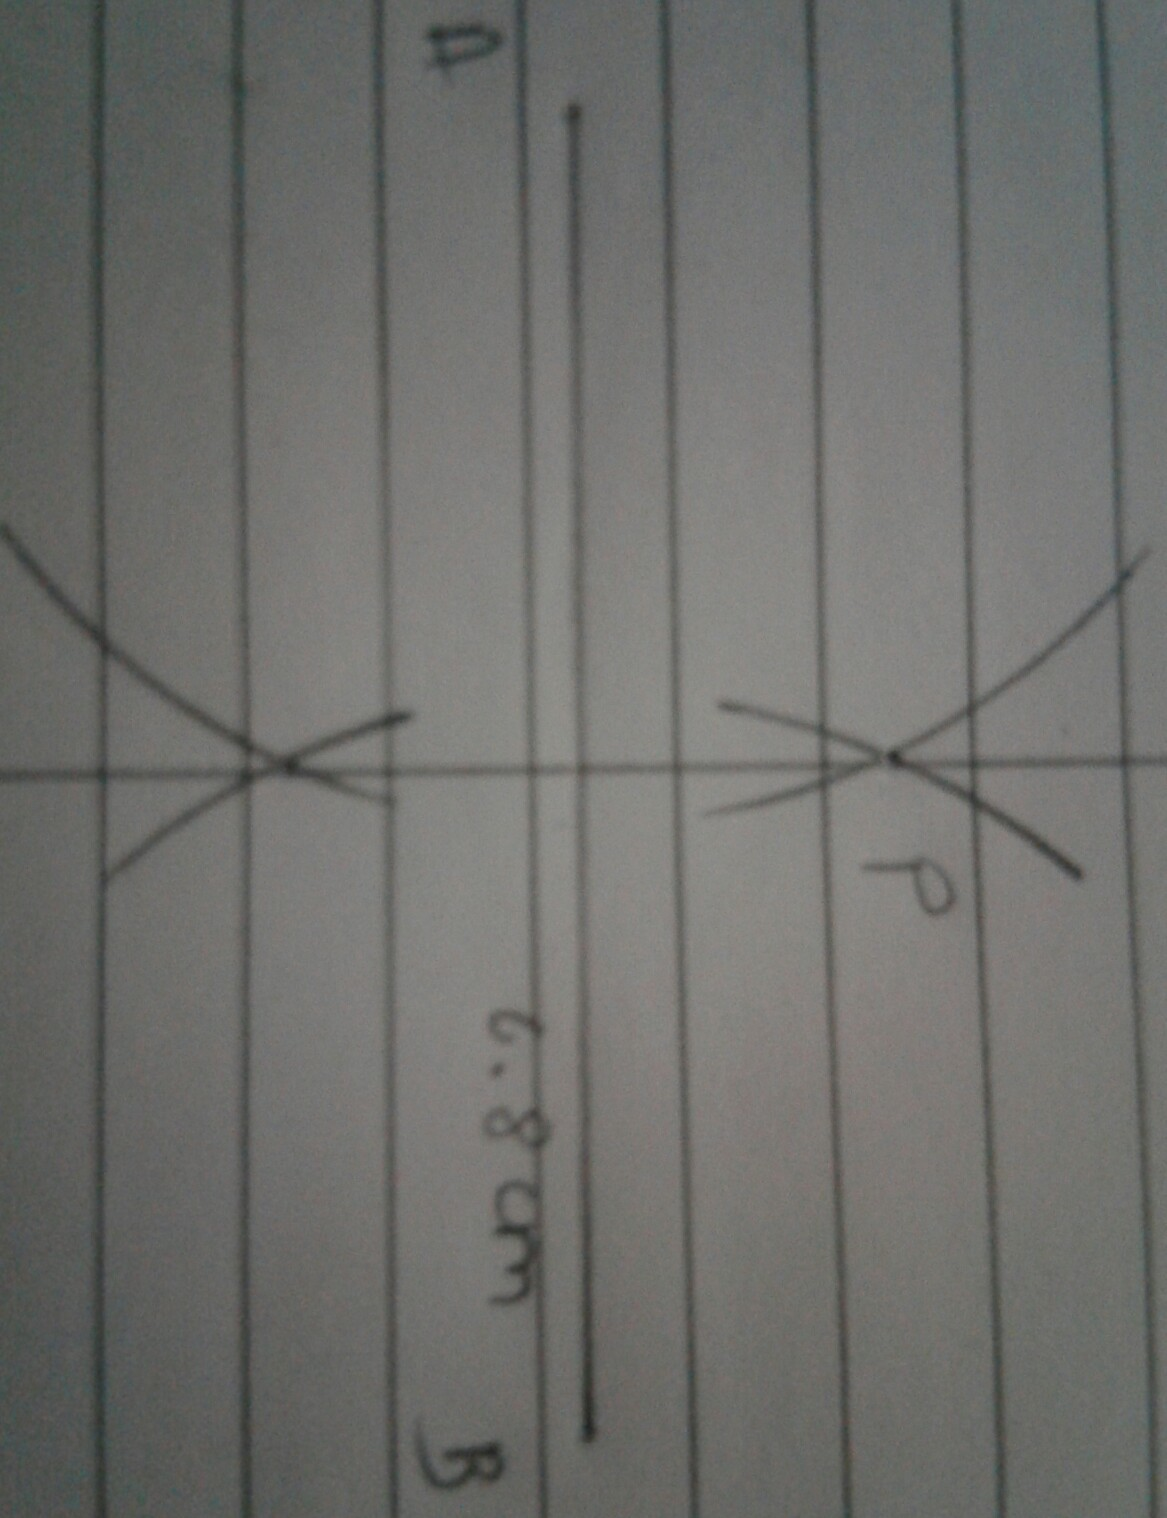 Draw A Line Segment Ab 6 8 Cm Take Any Point P Outside It Using